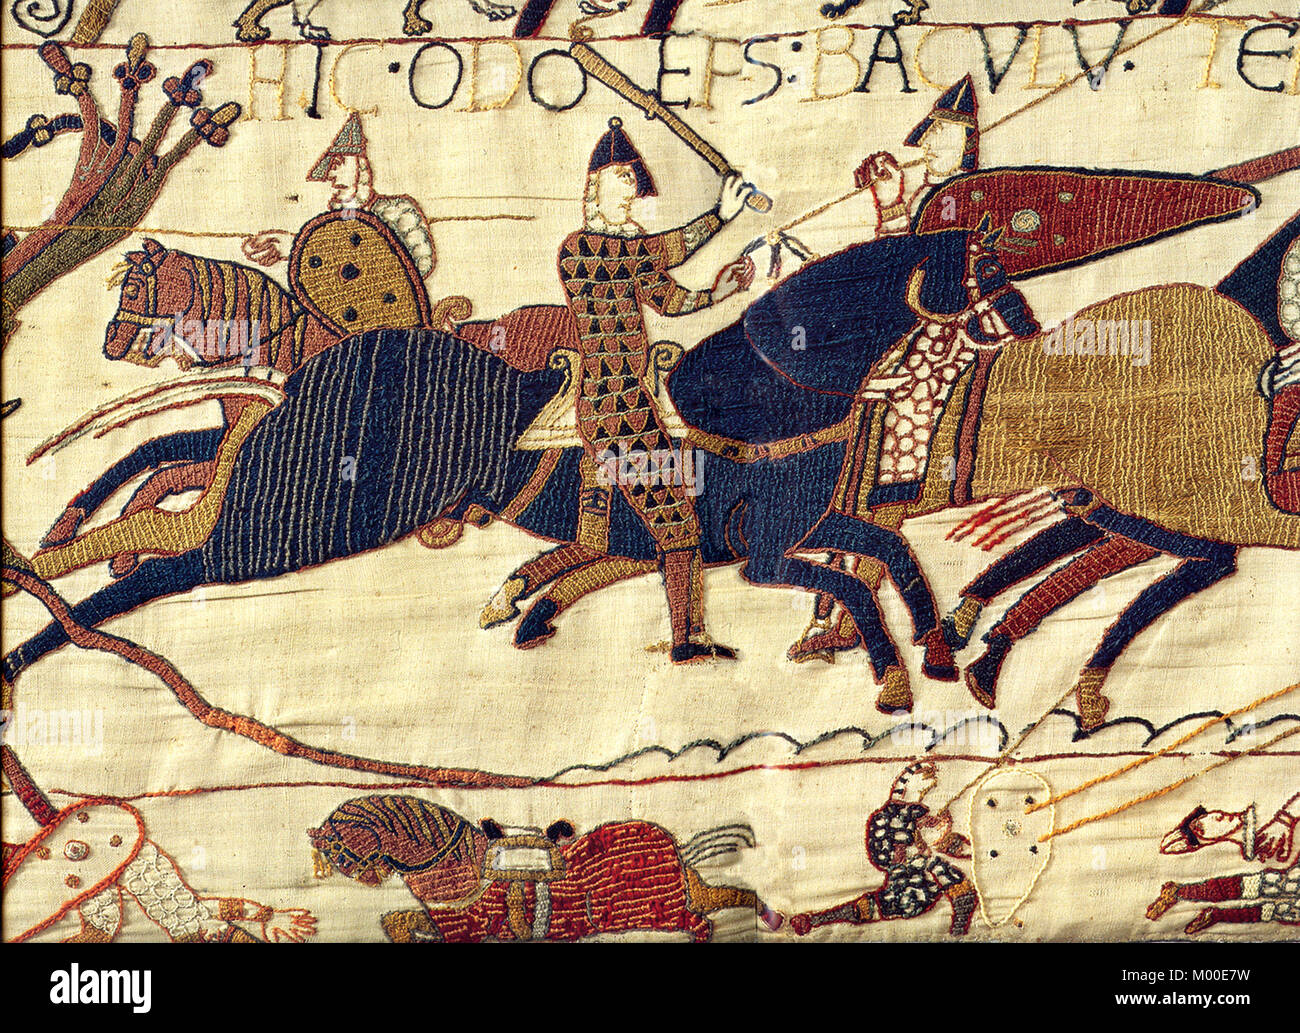 Bayeux Tapestry, A segment of the Bayeux Tapestry, depicting Odo, Bishop of Bayeux, rallying Duke William's - Stock Image